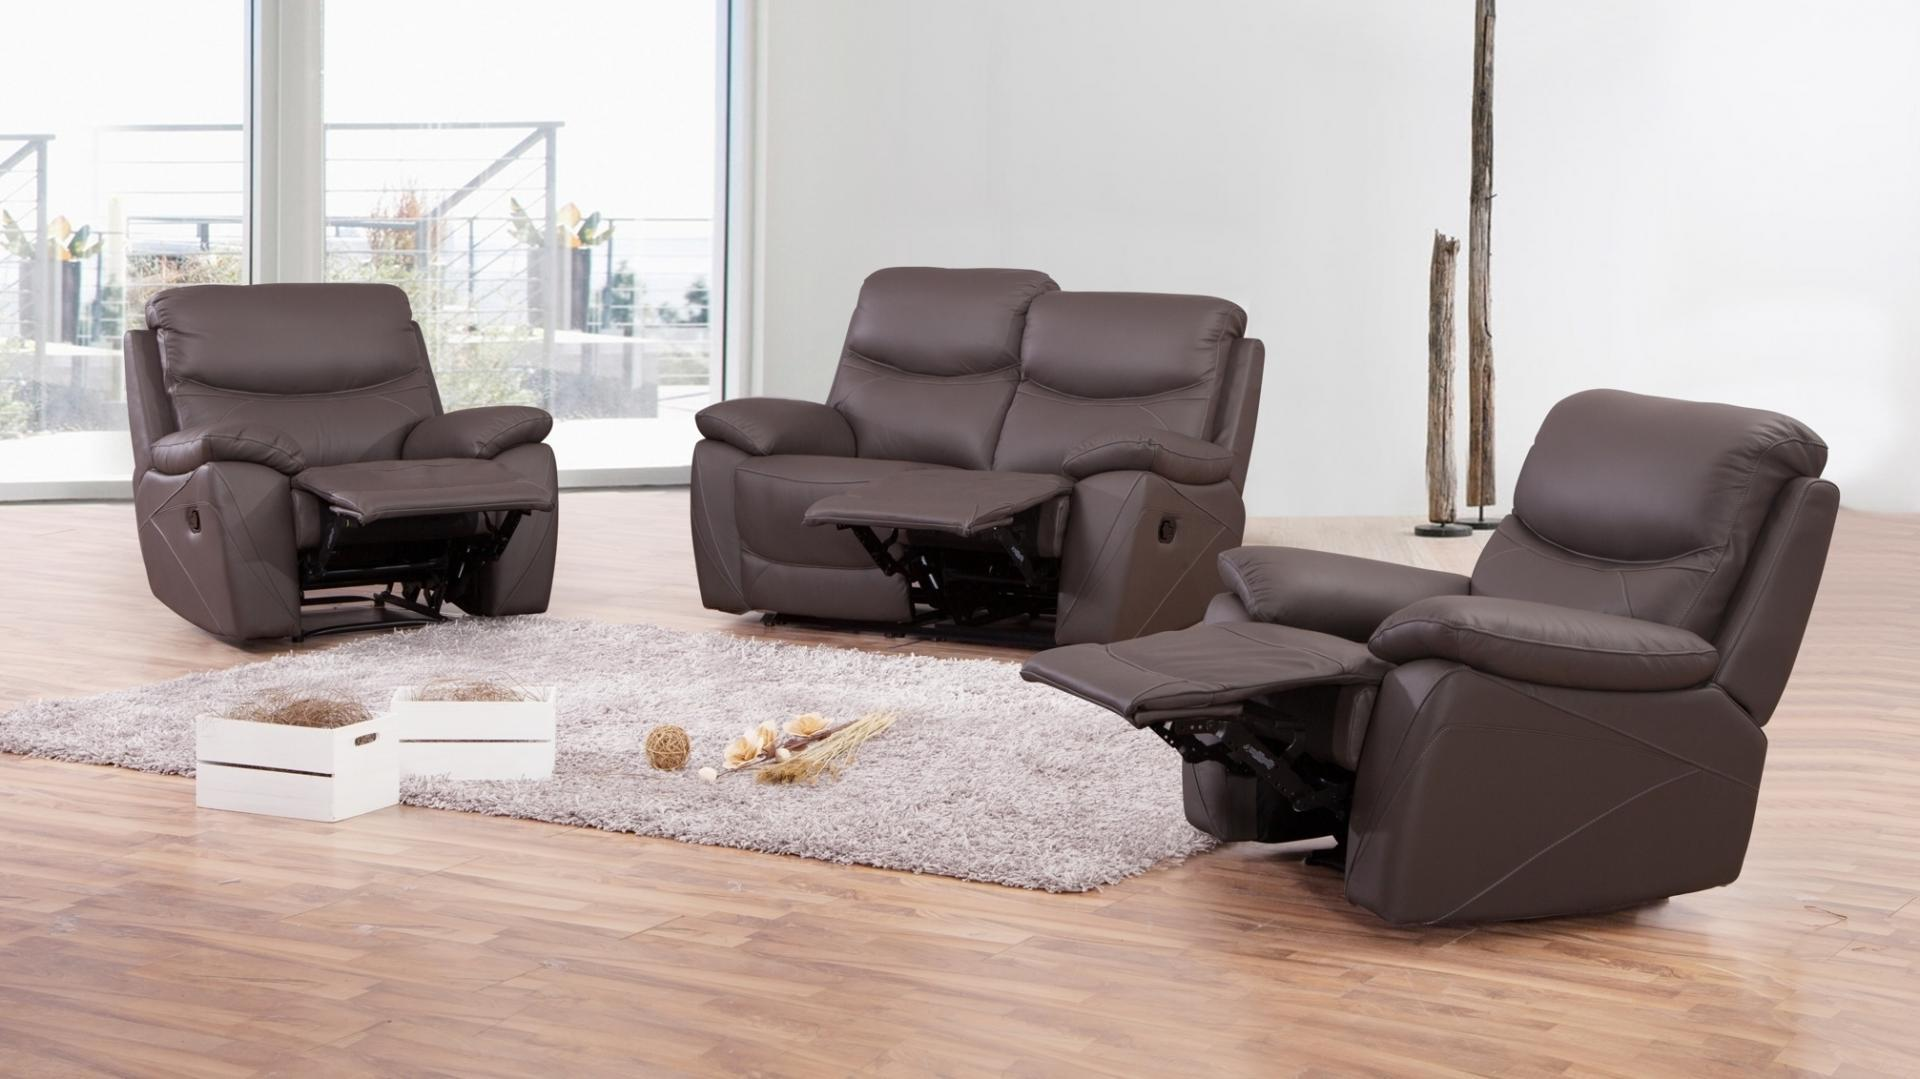 chelsea leather sofa presley espresso reclining recliner suite 2 43 1 lounge life